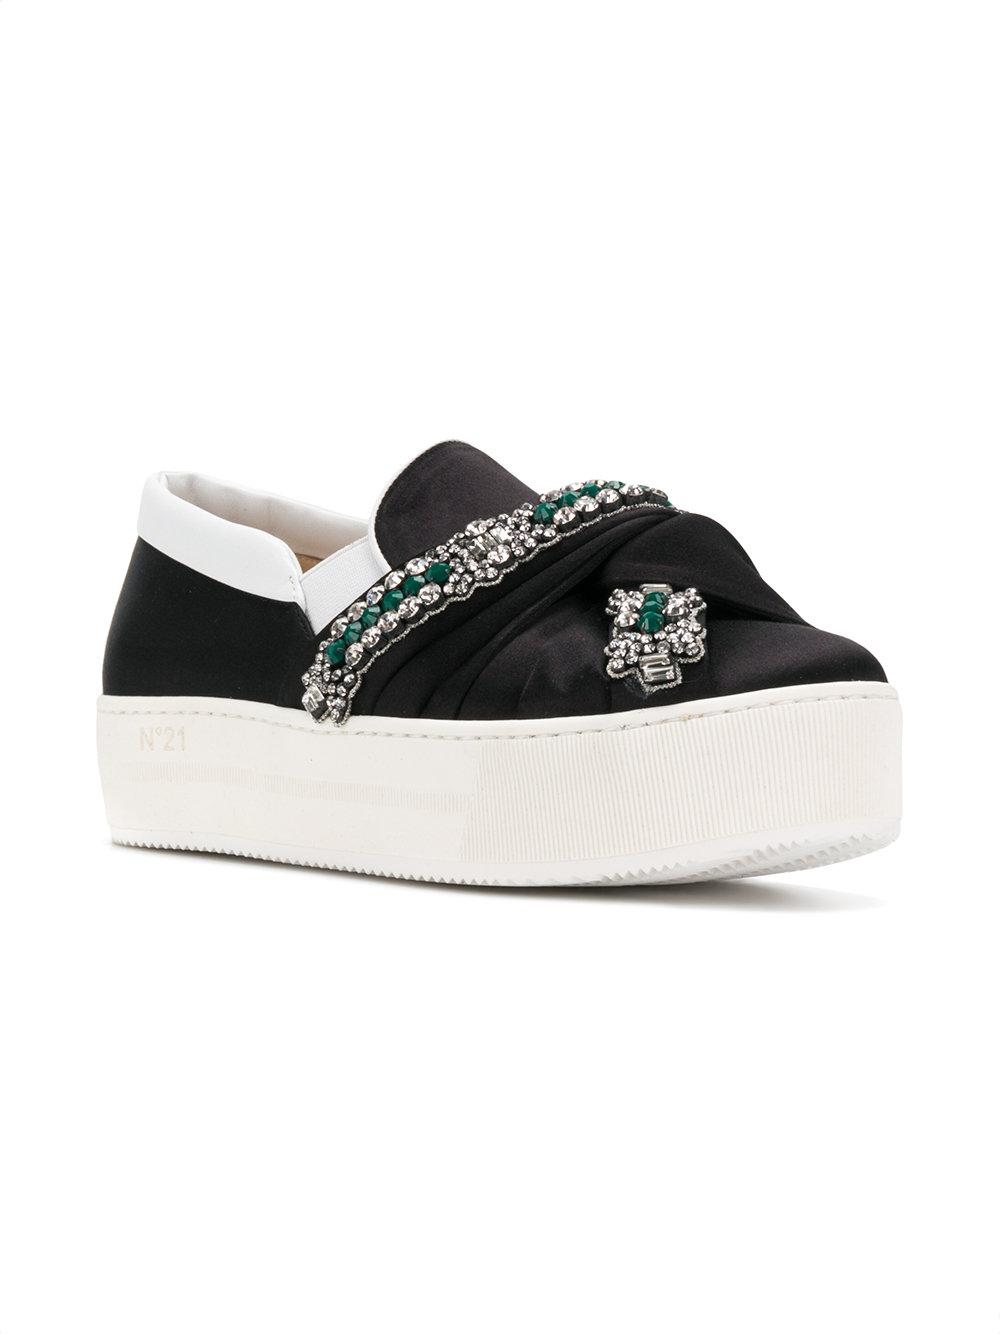 knotted platform embellished sneakers - Black N</ototo></div>                                   <span></span>                               </div>             <div>                                     <div>                                             <div>                                                     <div>                                                             <div>                                                                     <div>                                                                             <div>                                                                                     <div>                                                                                             <ko-collapse>                                                                                                     <div>                                                                                                             <strong>                                                         Where to Go                                                     </strong>                                                                                                         </div>                                                                                                     <div>                                                                                                             <div>                                                                                                                     <ko-collapse>                                                                                                                             <div>                                                                                                                                     <strong>                                                                     Provinces Territories                                                                 </strong>                                                                                                                                 </div>                                                                                                                             <div>                                                                                                                                     <div>                                                                                                                                             <div>                                                                                                                                                     <a href=